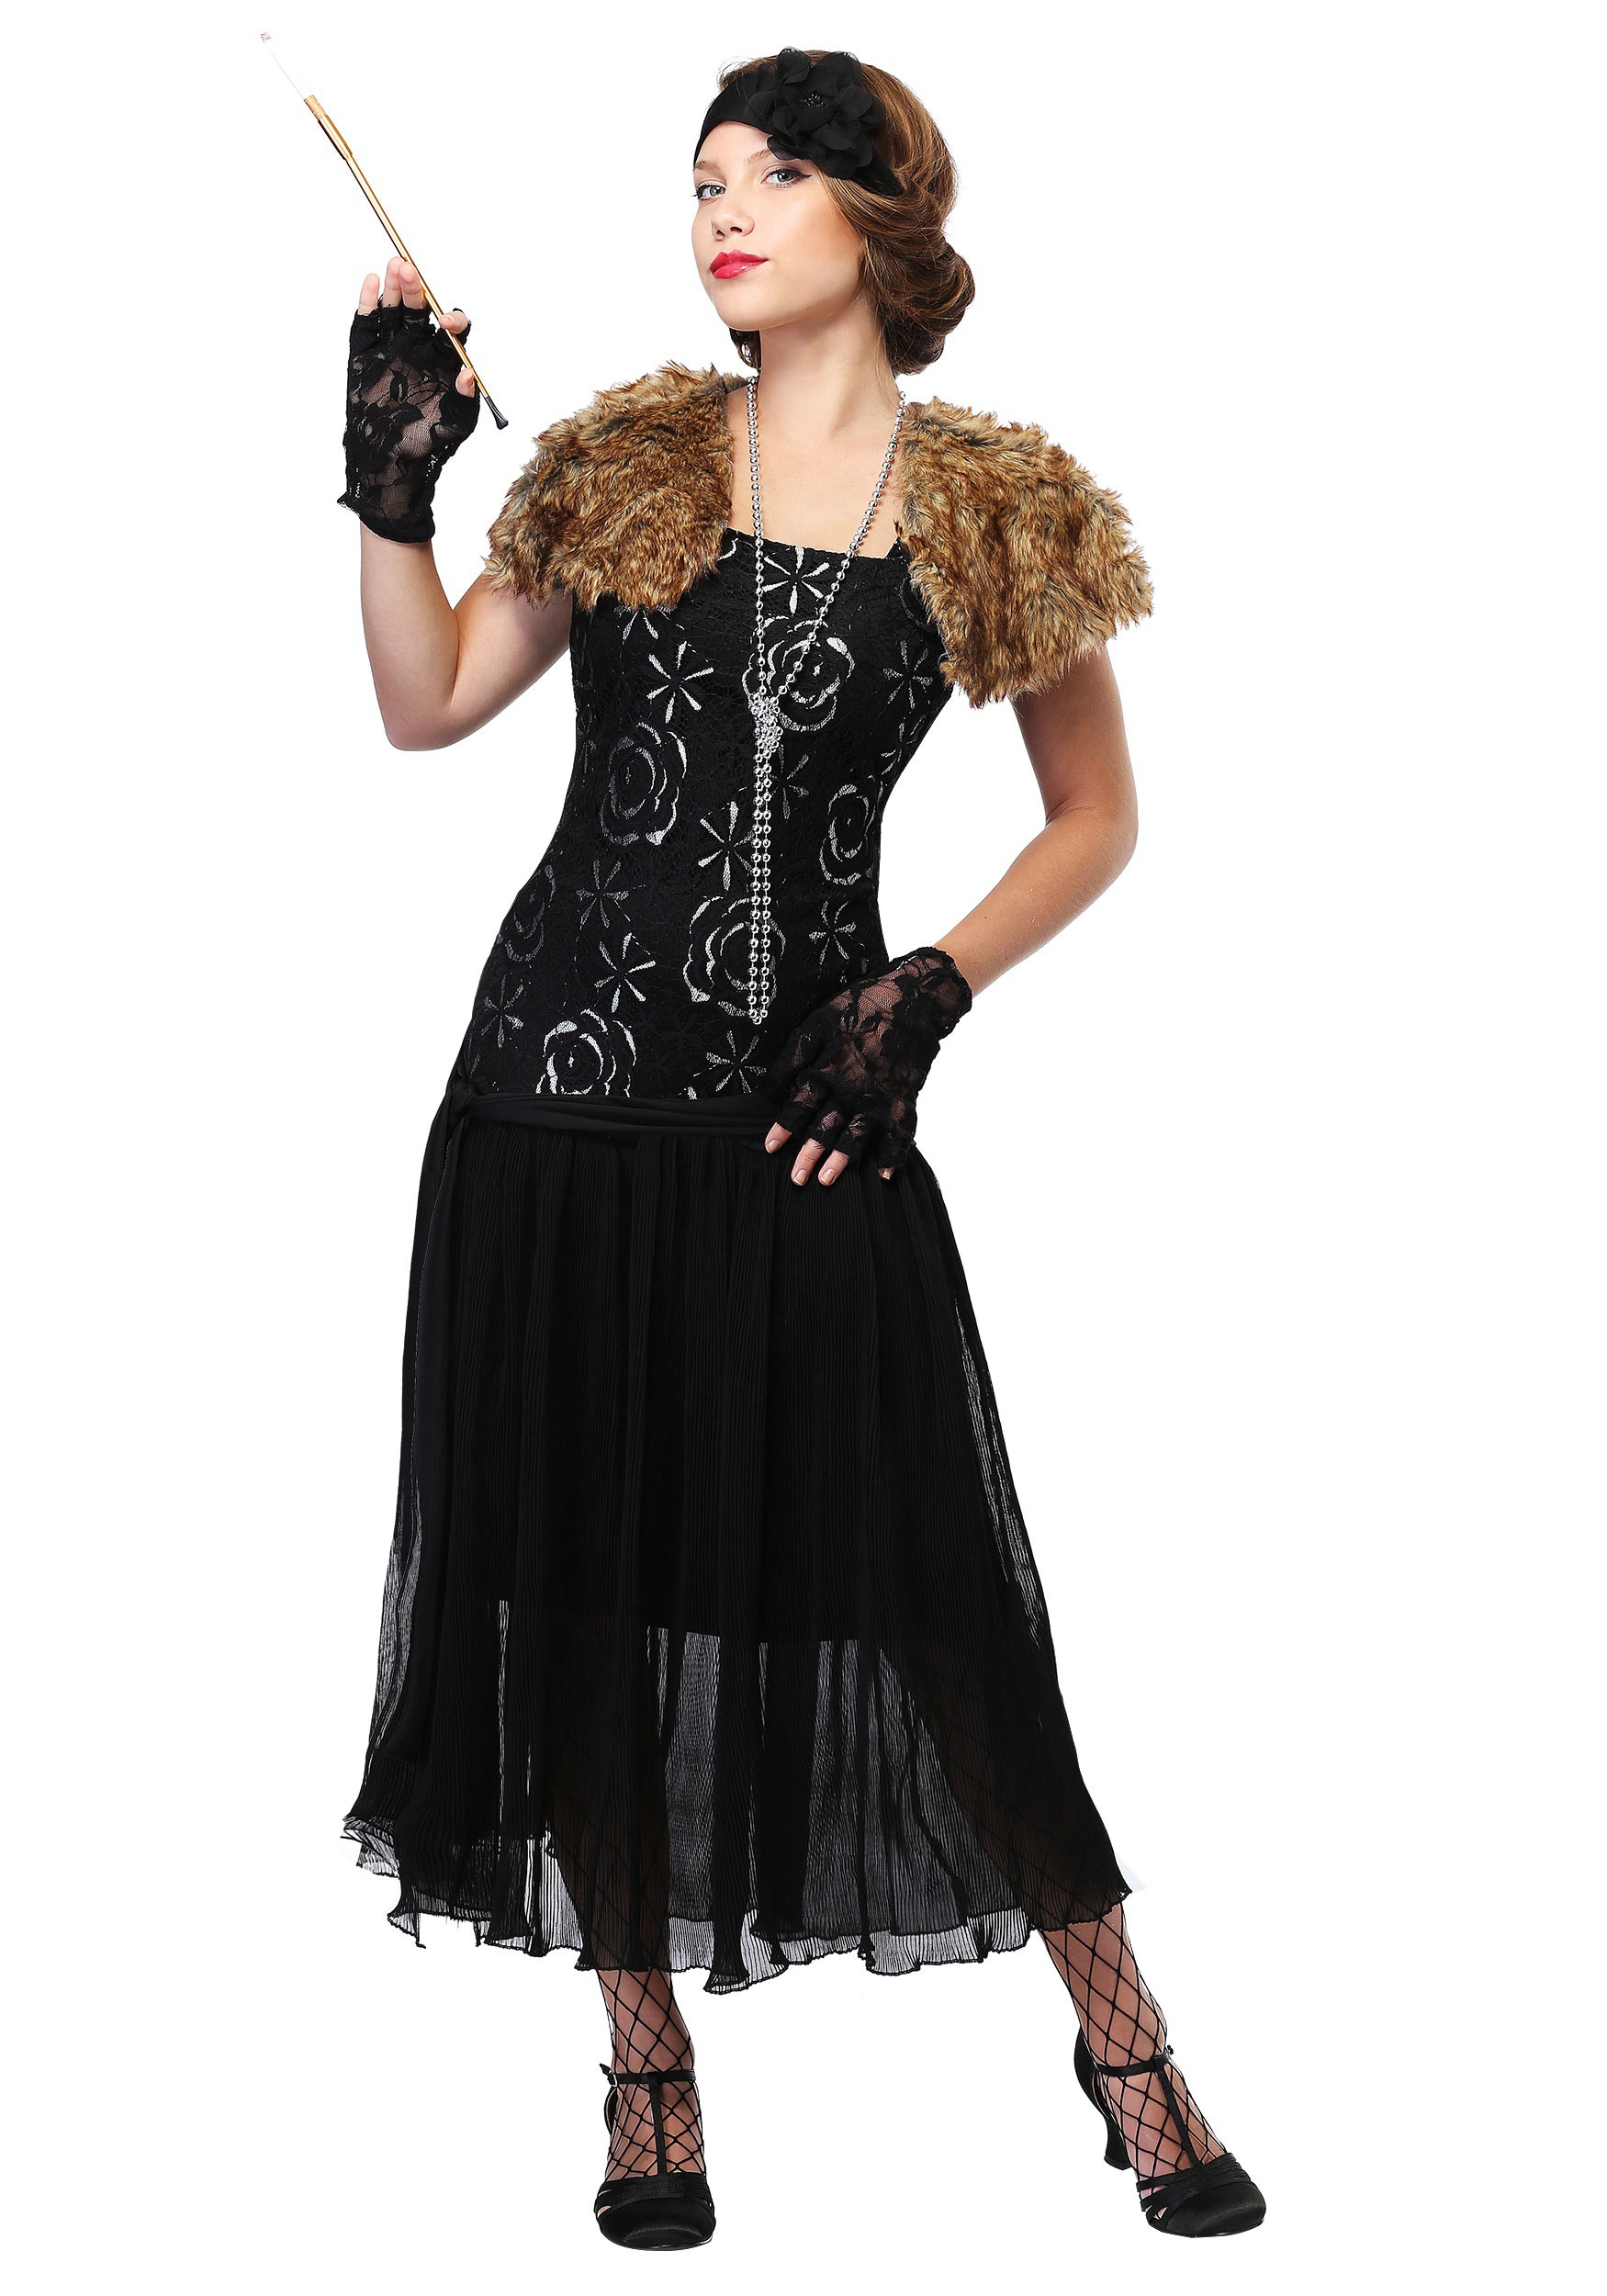 4bdf68bb0f4 Charleston Flapper Costume in Women s Plus Size 1X 2X 3X 4X